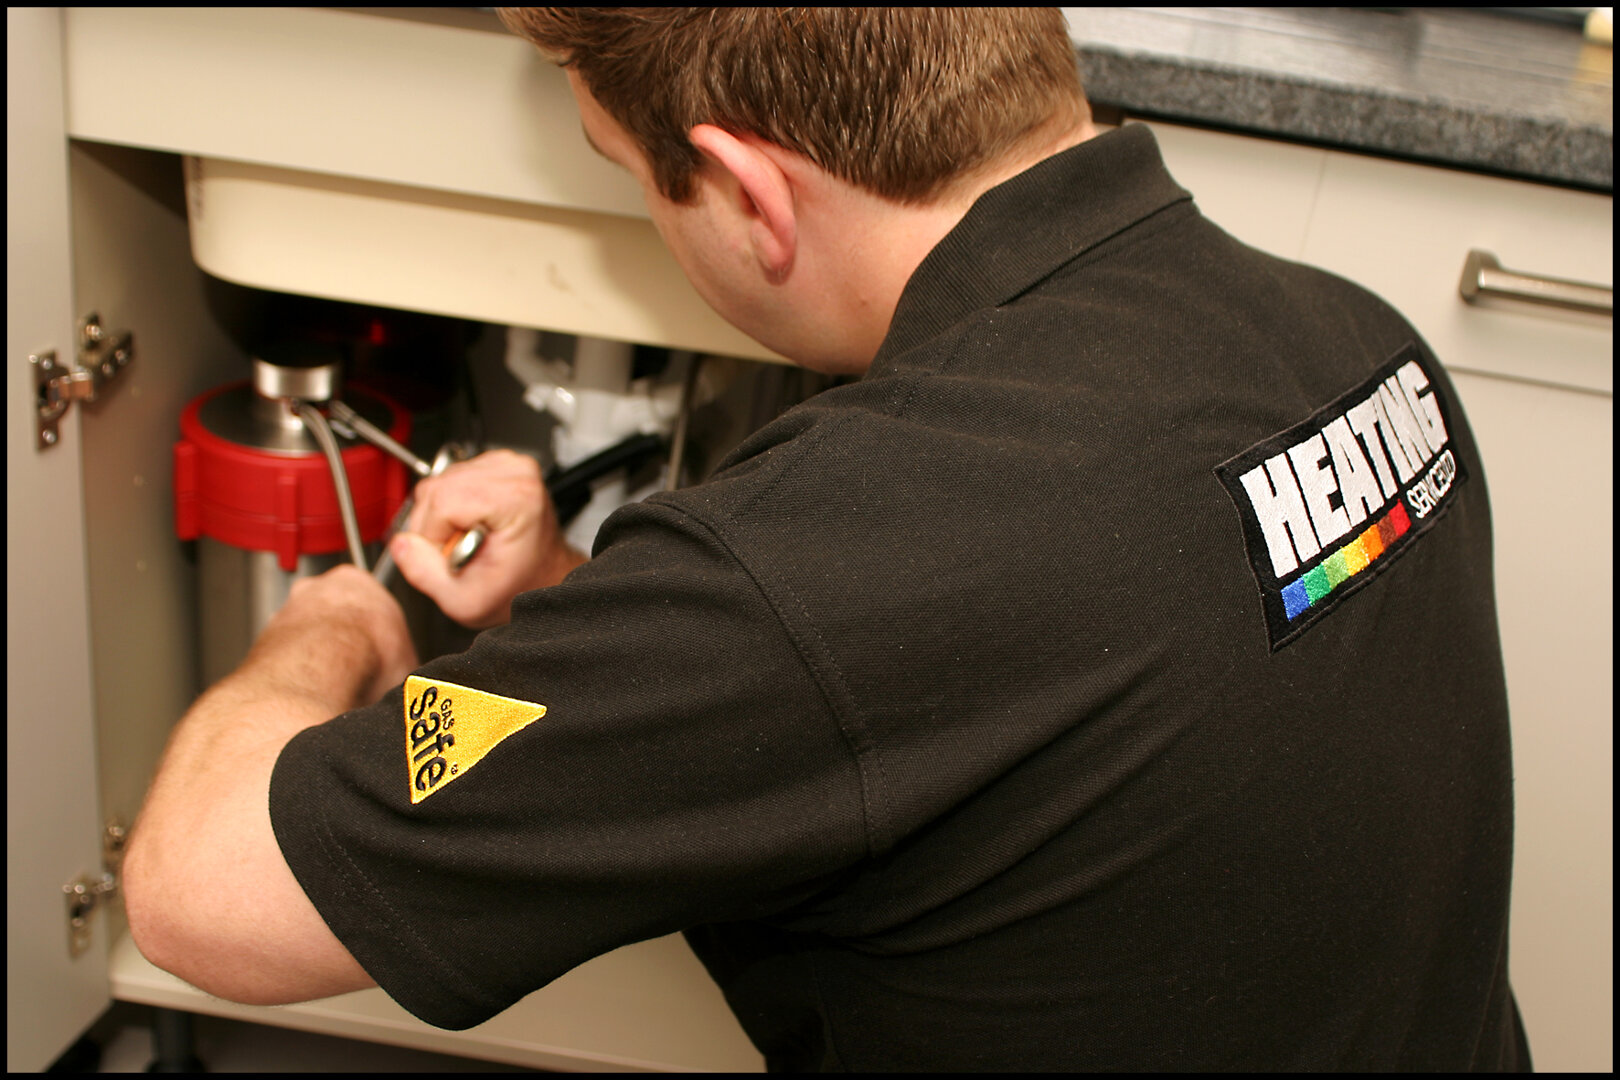 Plumbers Boiler Installation Service and Repairs and Bathroom Design and Installation by Heating Services Ltd in Godstone (6)